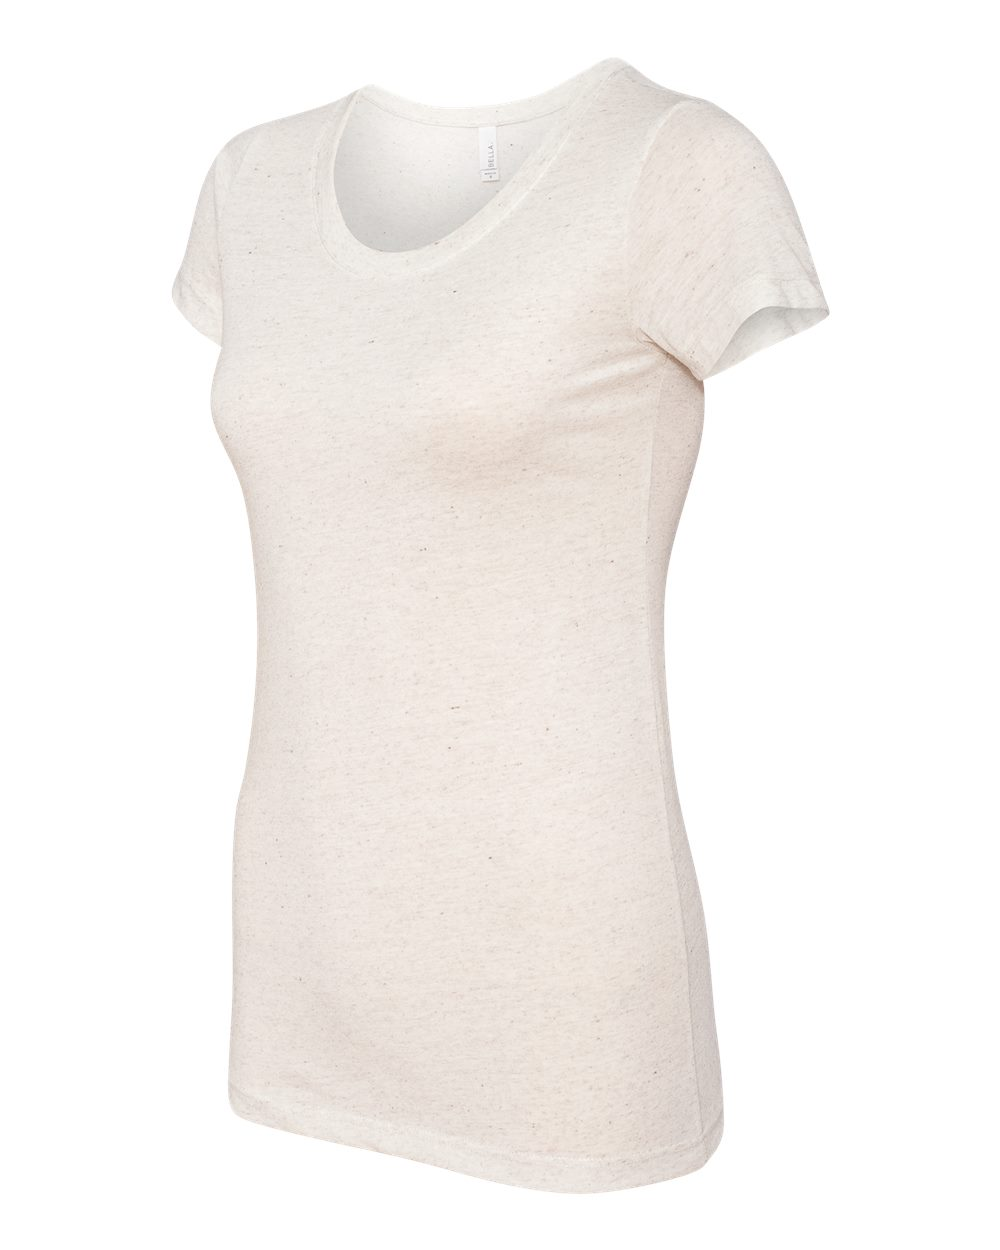 Bella-Canvas-Women-039-s-Triblend-Short-Sleeve-T-Shirt-B8413-S-2XL thumbnail 6